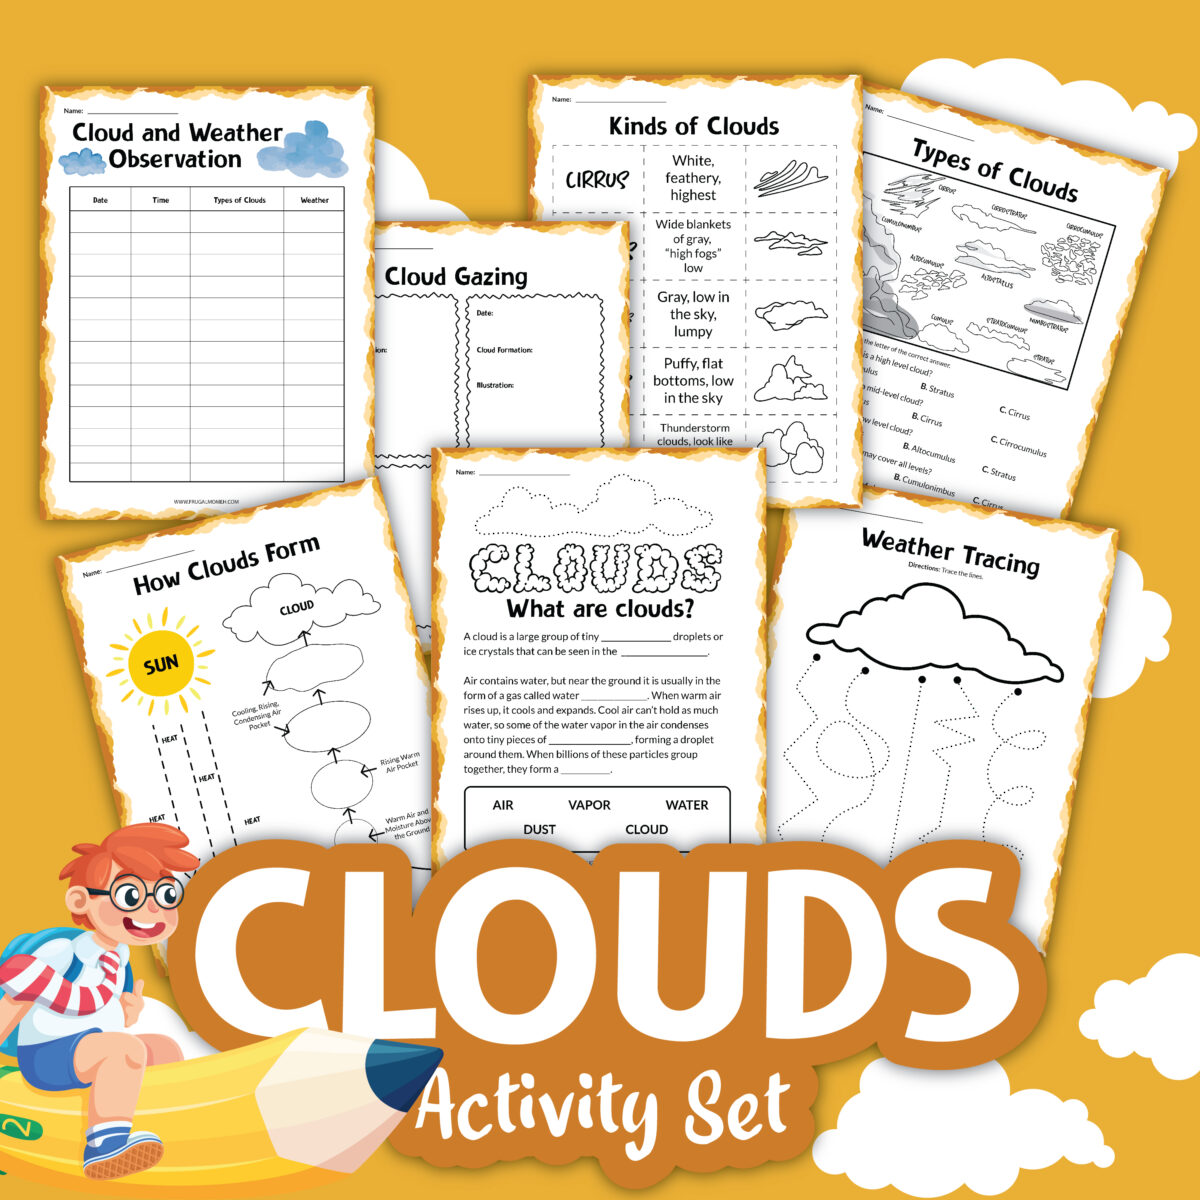 Download this Free Printable Clouds Activity Sheets Set for a fun and engaging learning experience for kids.